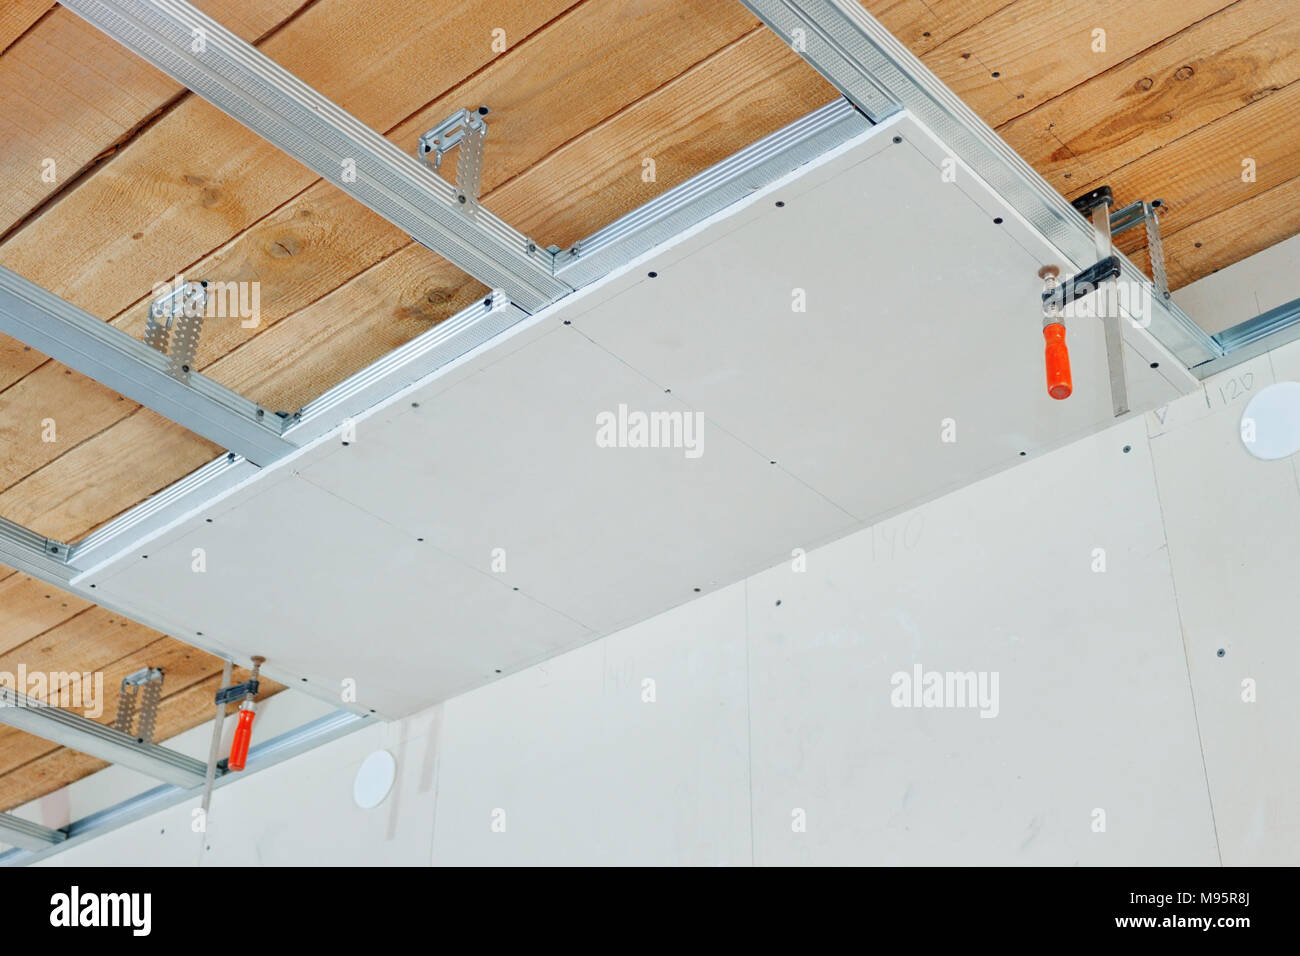 High Quality Installation Of False Ceiling Of Gypsum Board   Stock Image